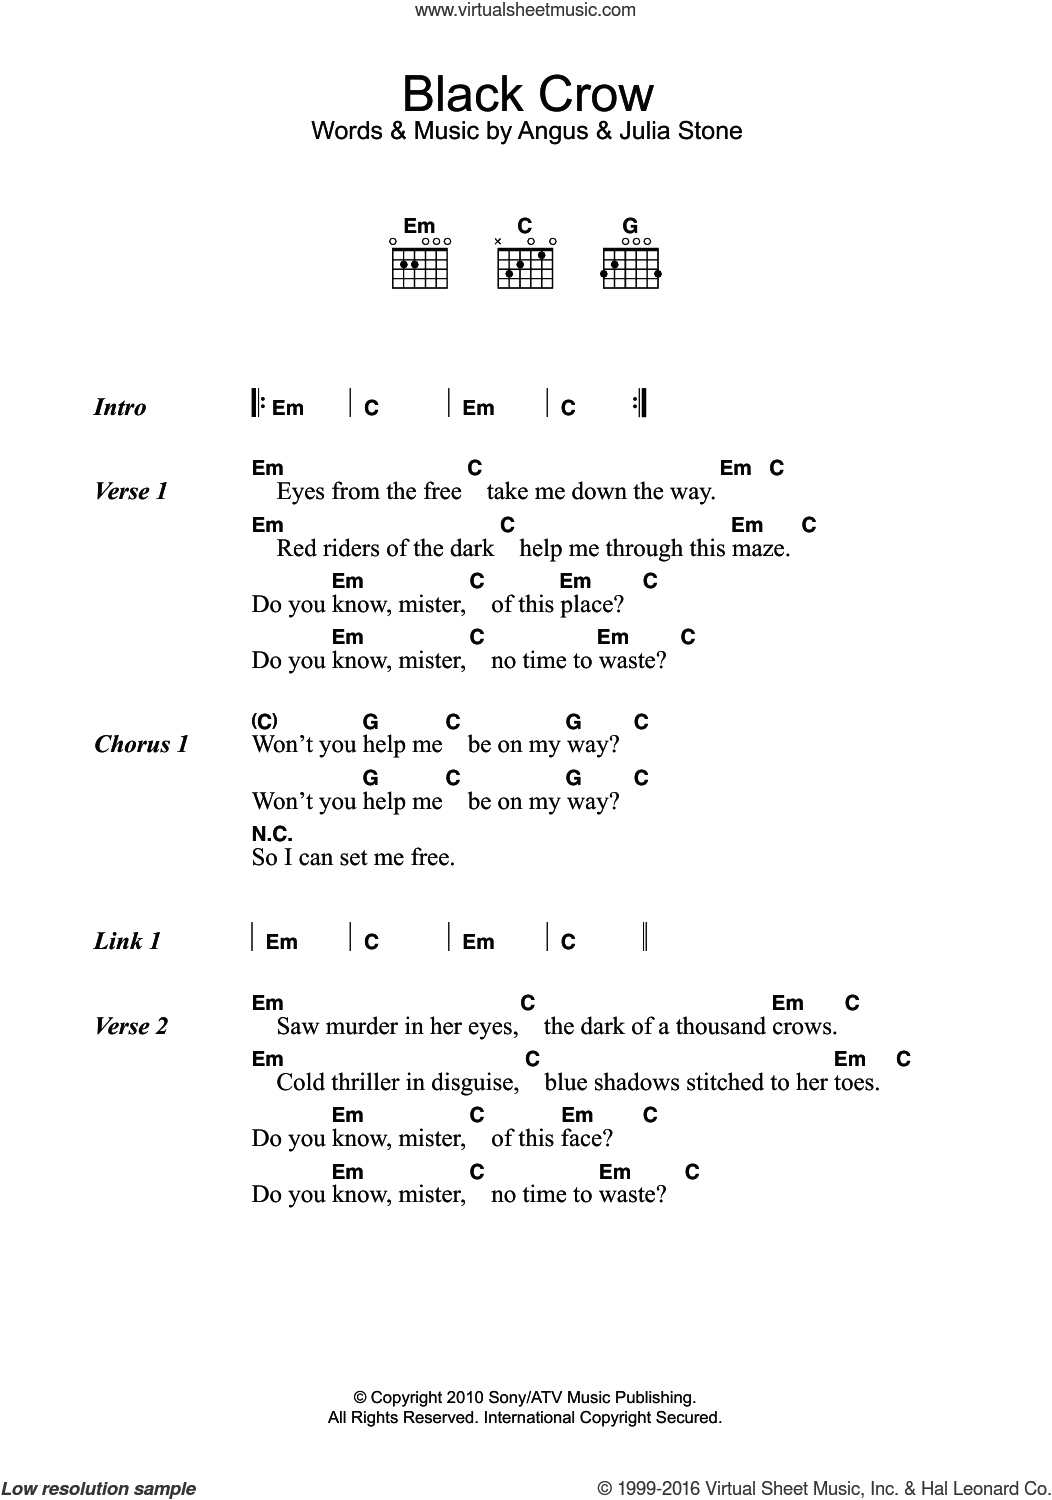 Black Crow sheet music for guitar (chords) by Julia Stone and Angus Stone, intermediate skill level